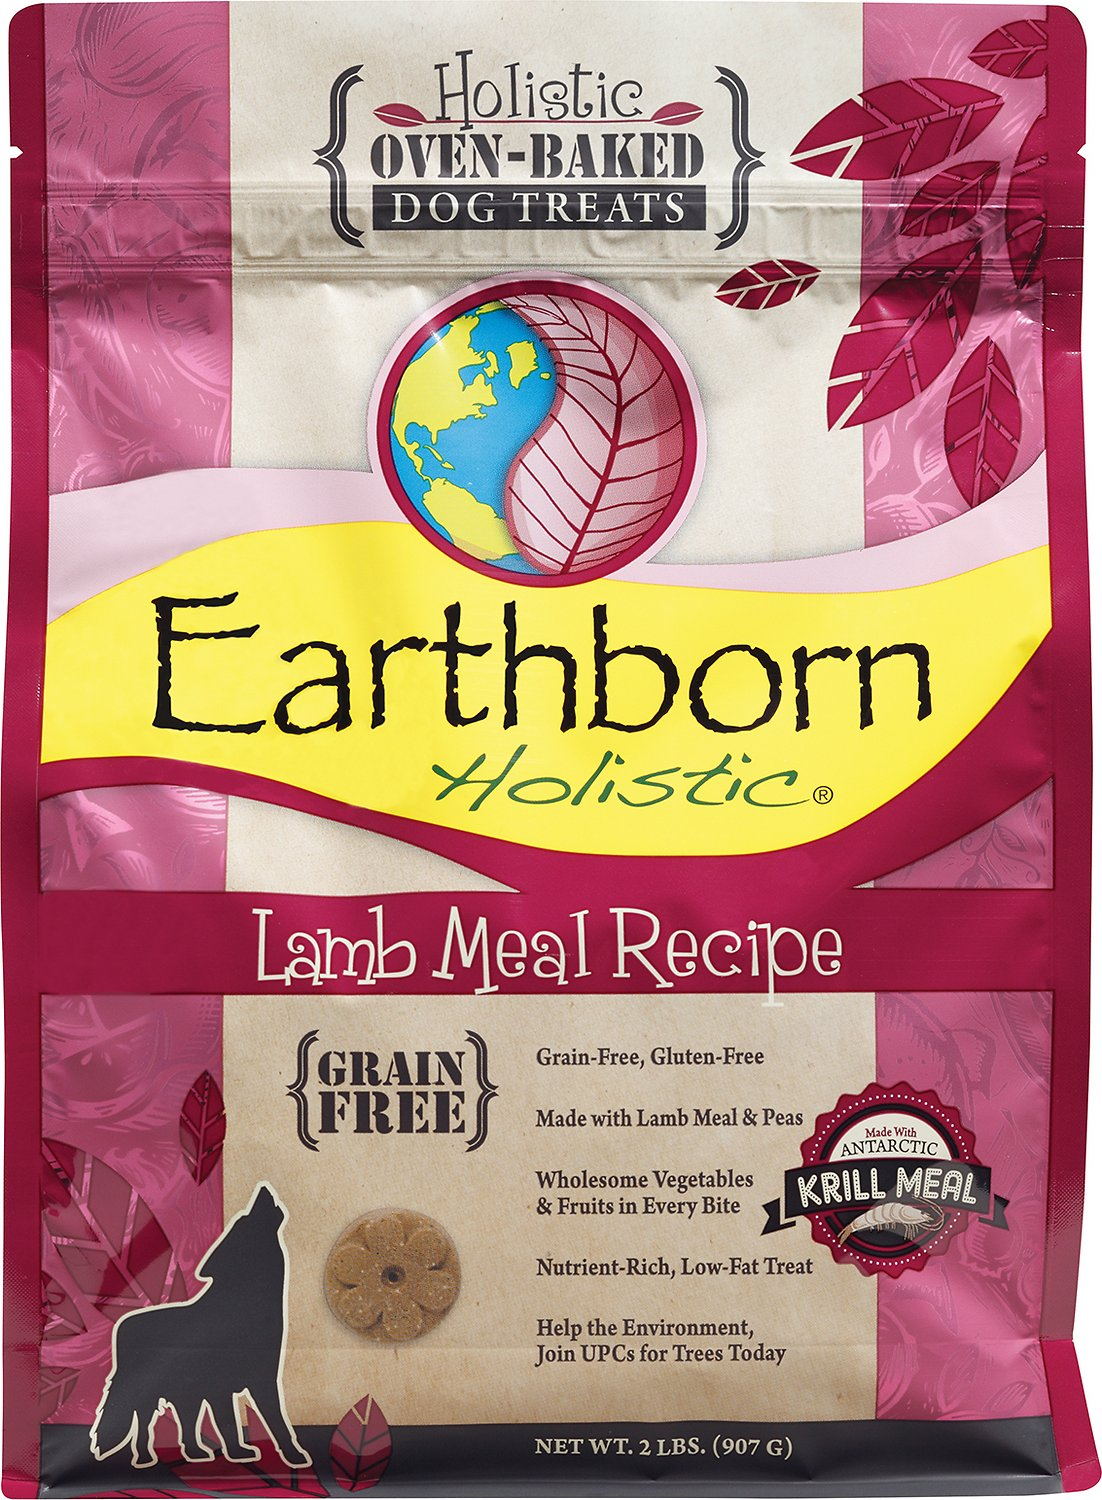 Earthborn Holistic Grain Free Lamb Meal Recipe Dog Treats 2 Lb Bag